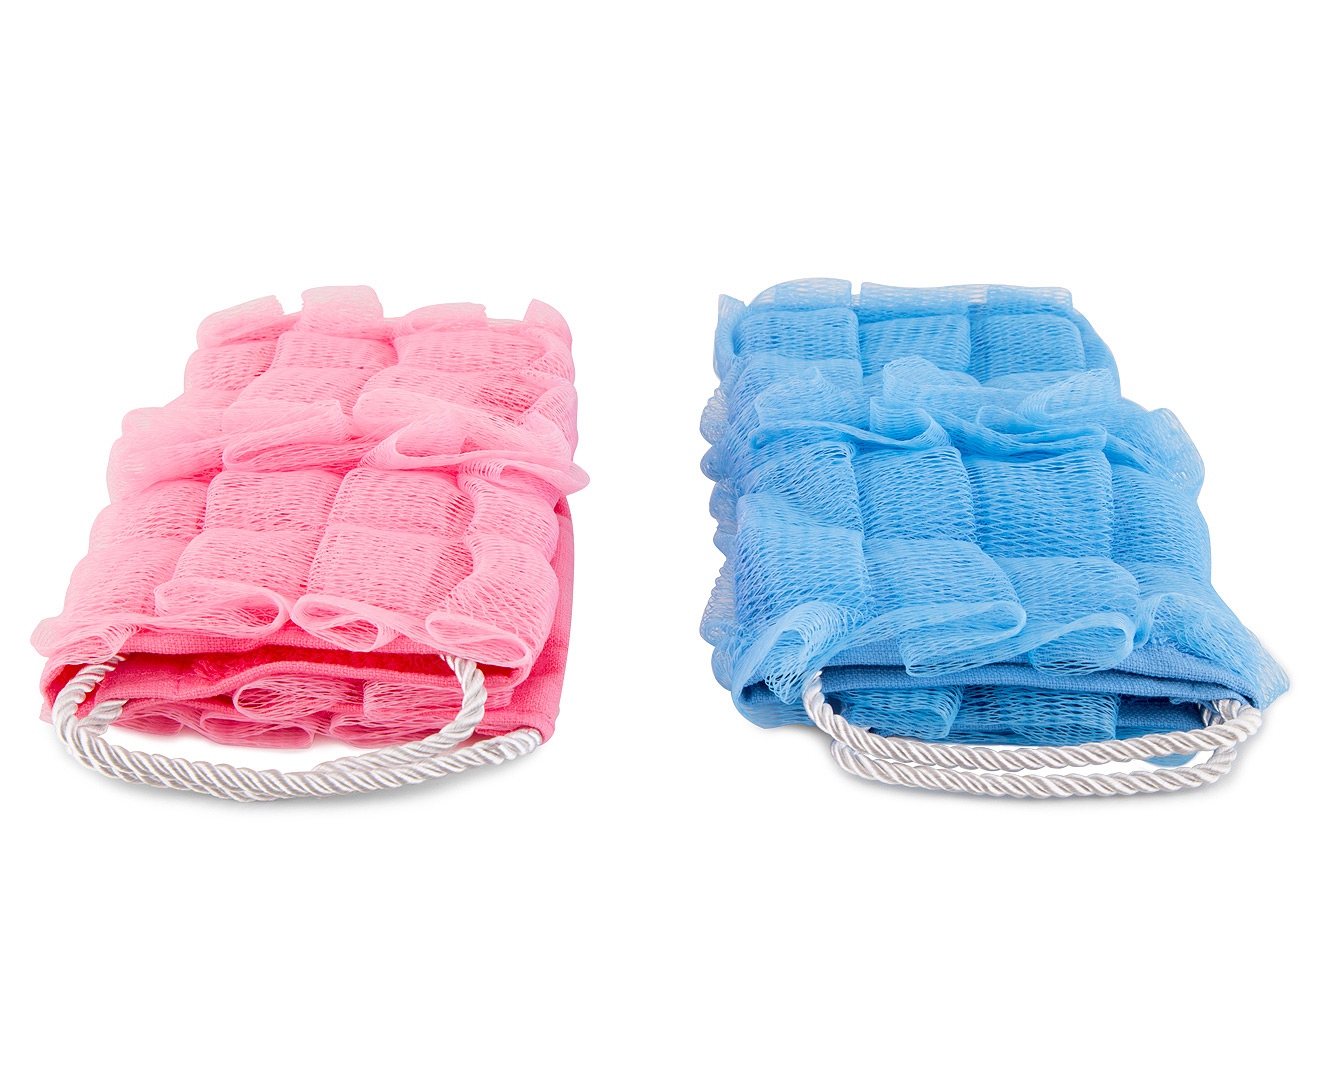 Image result for Easy Reach Loofa Cloth 2pk - Pink/Blue- https://www.catchoftheday.com.au